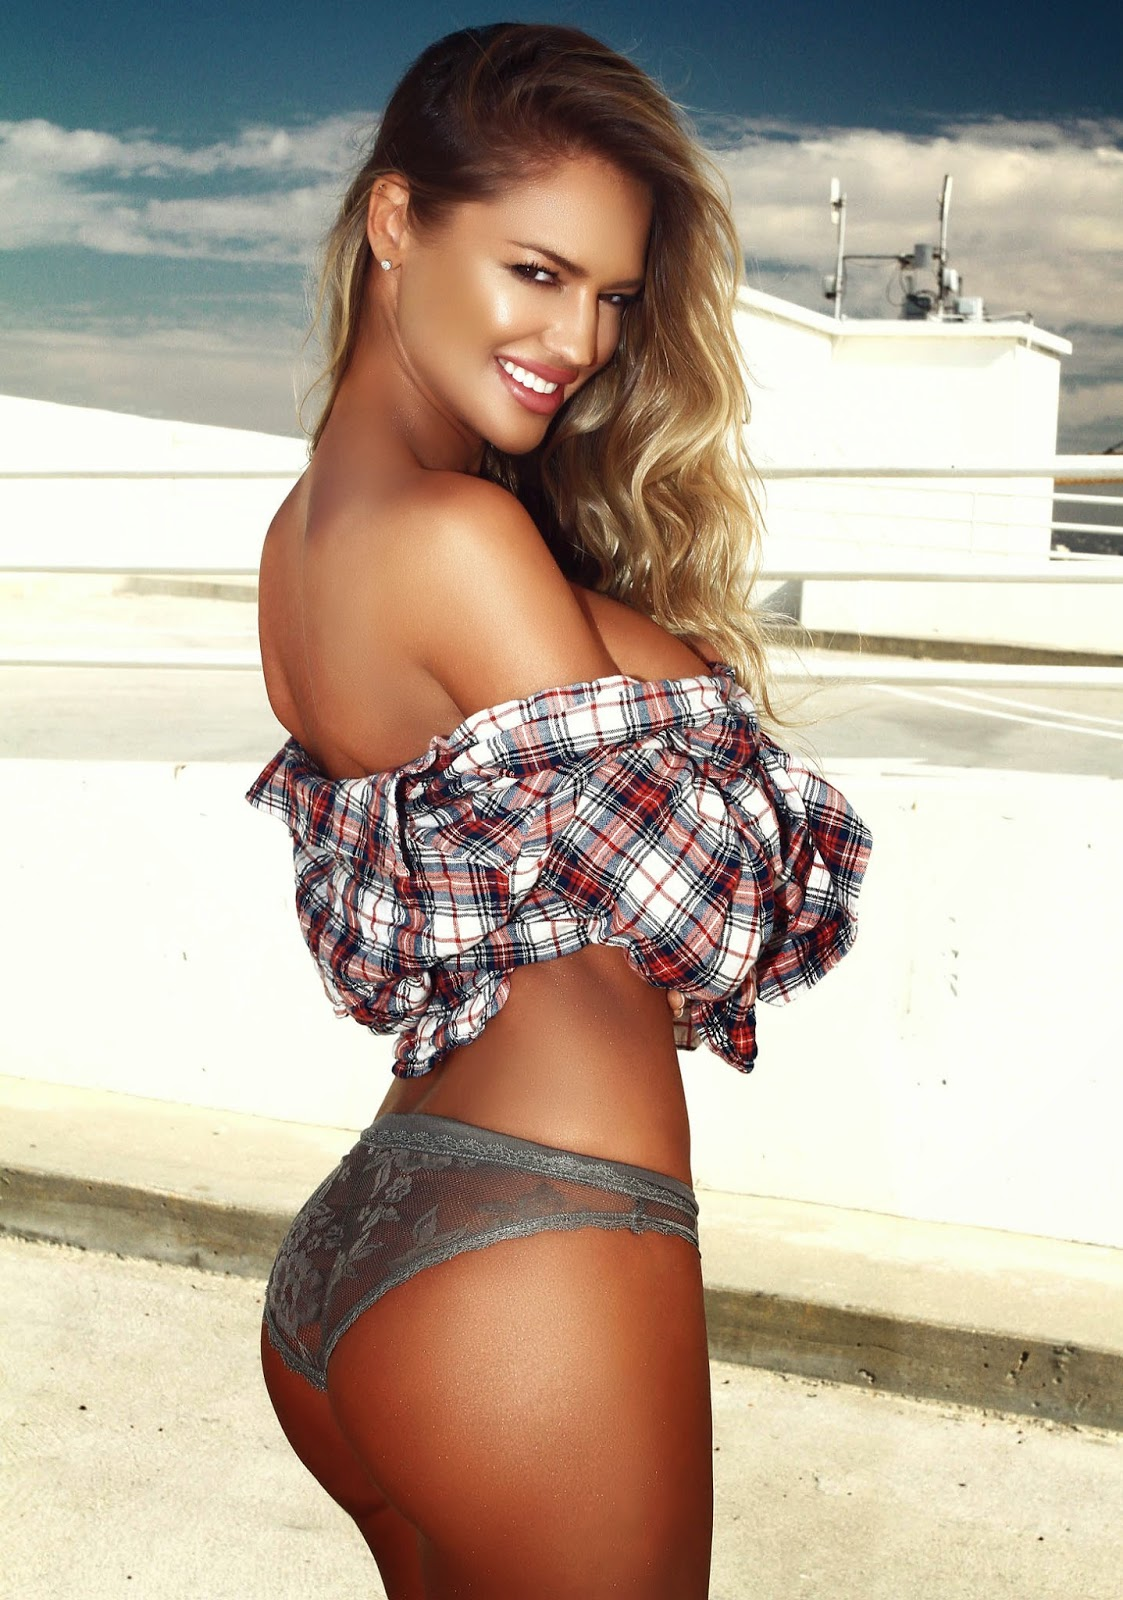 Charlie Riina Is The Hottest Girl I've Ever Seen In My Entire Life!